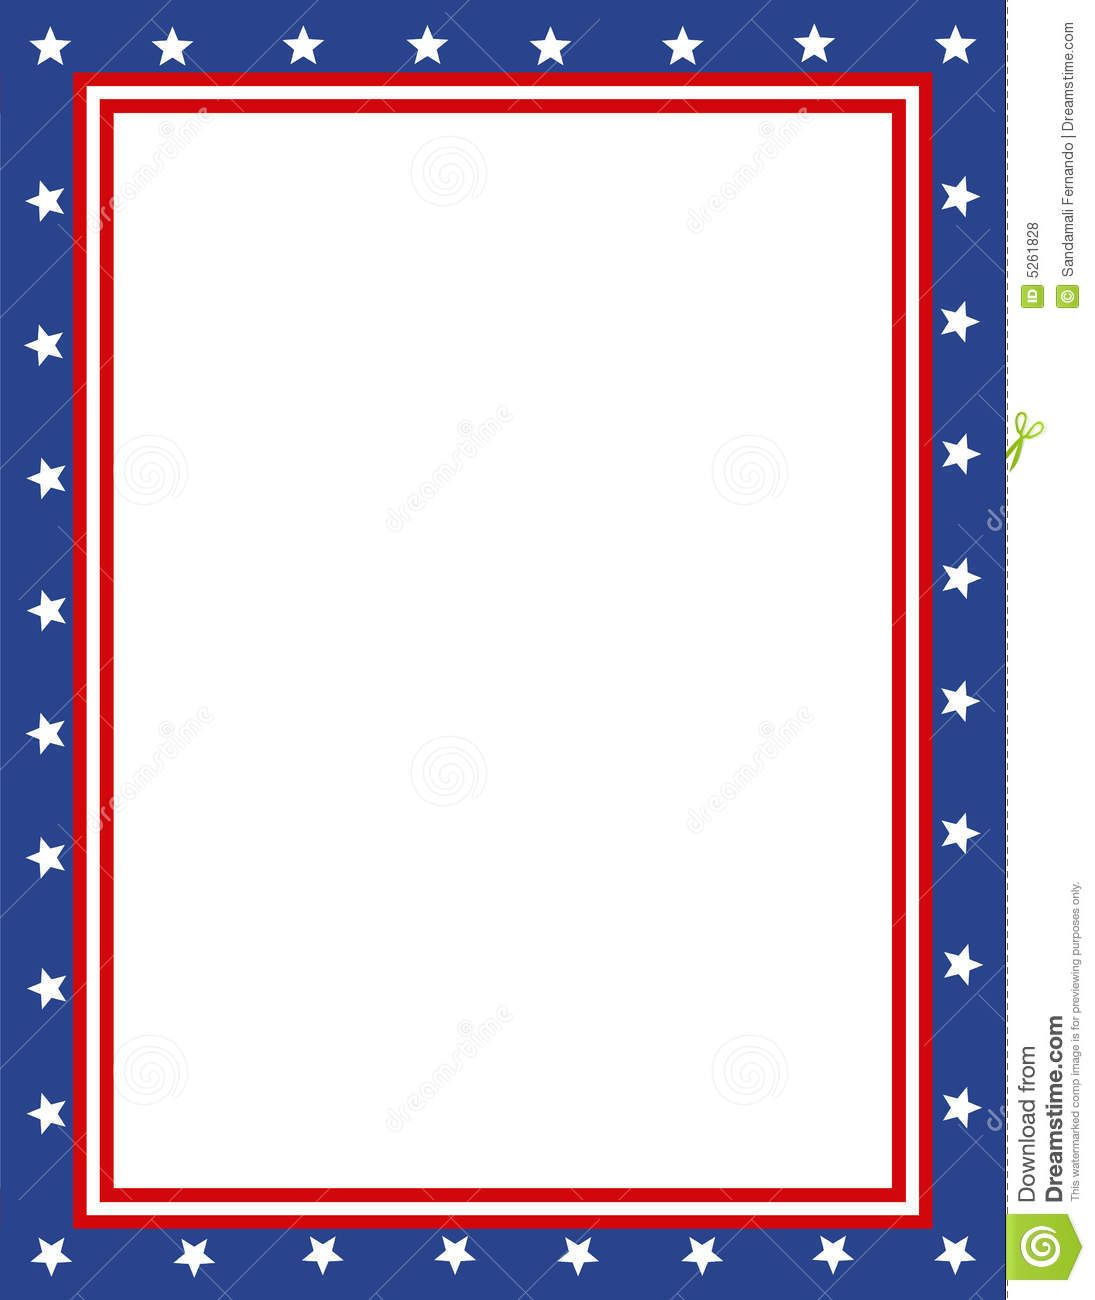 Summer camp border clipart free images 4 - Free Patriotic Page Borders Patriotic Border